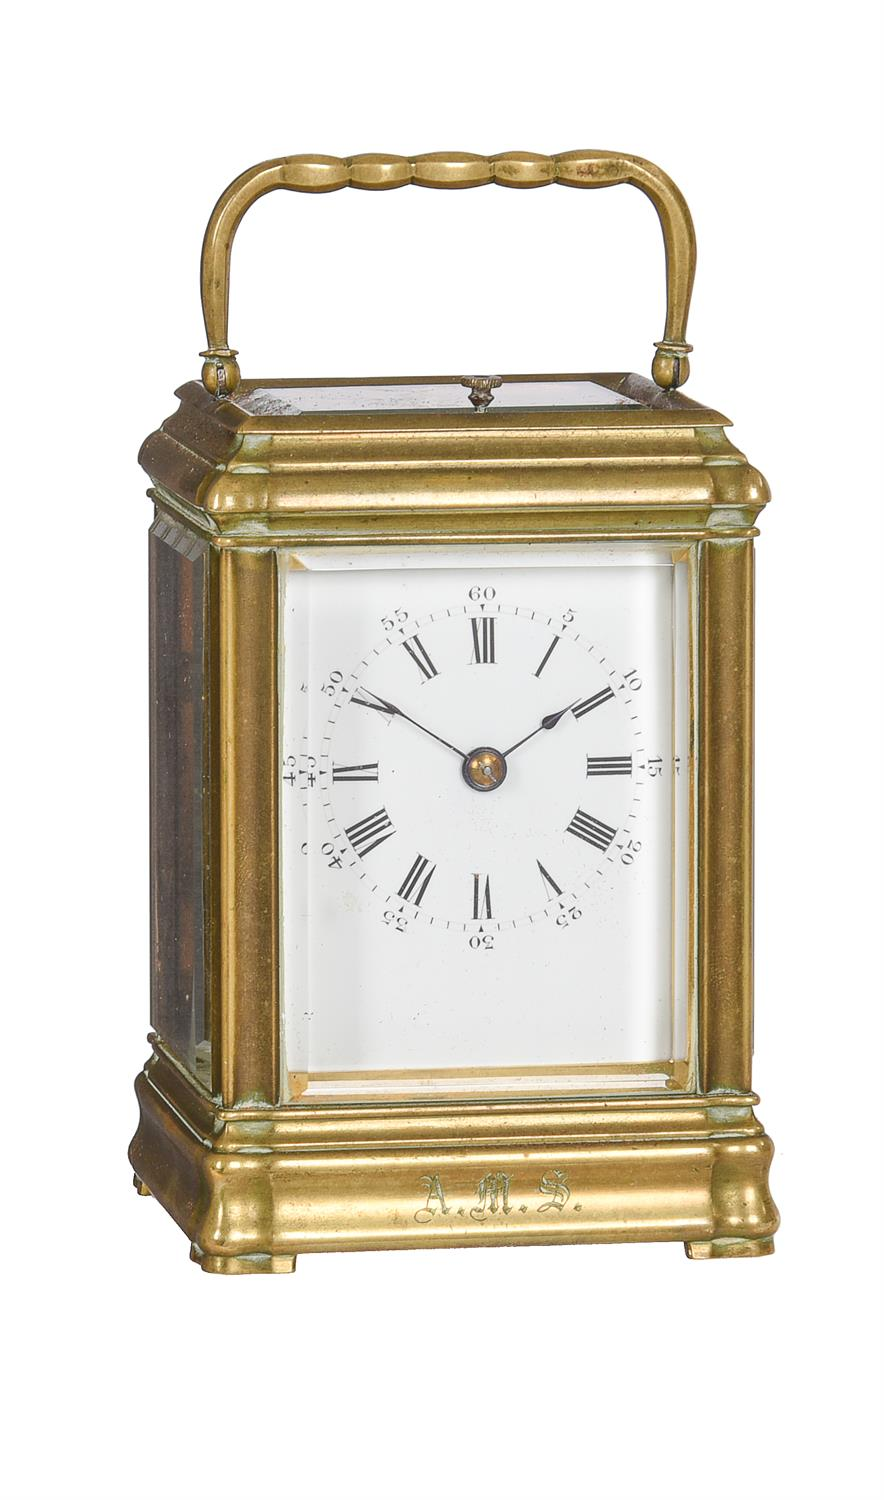 A French brass mid-sized gorge carriage clock with push-button repeat